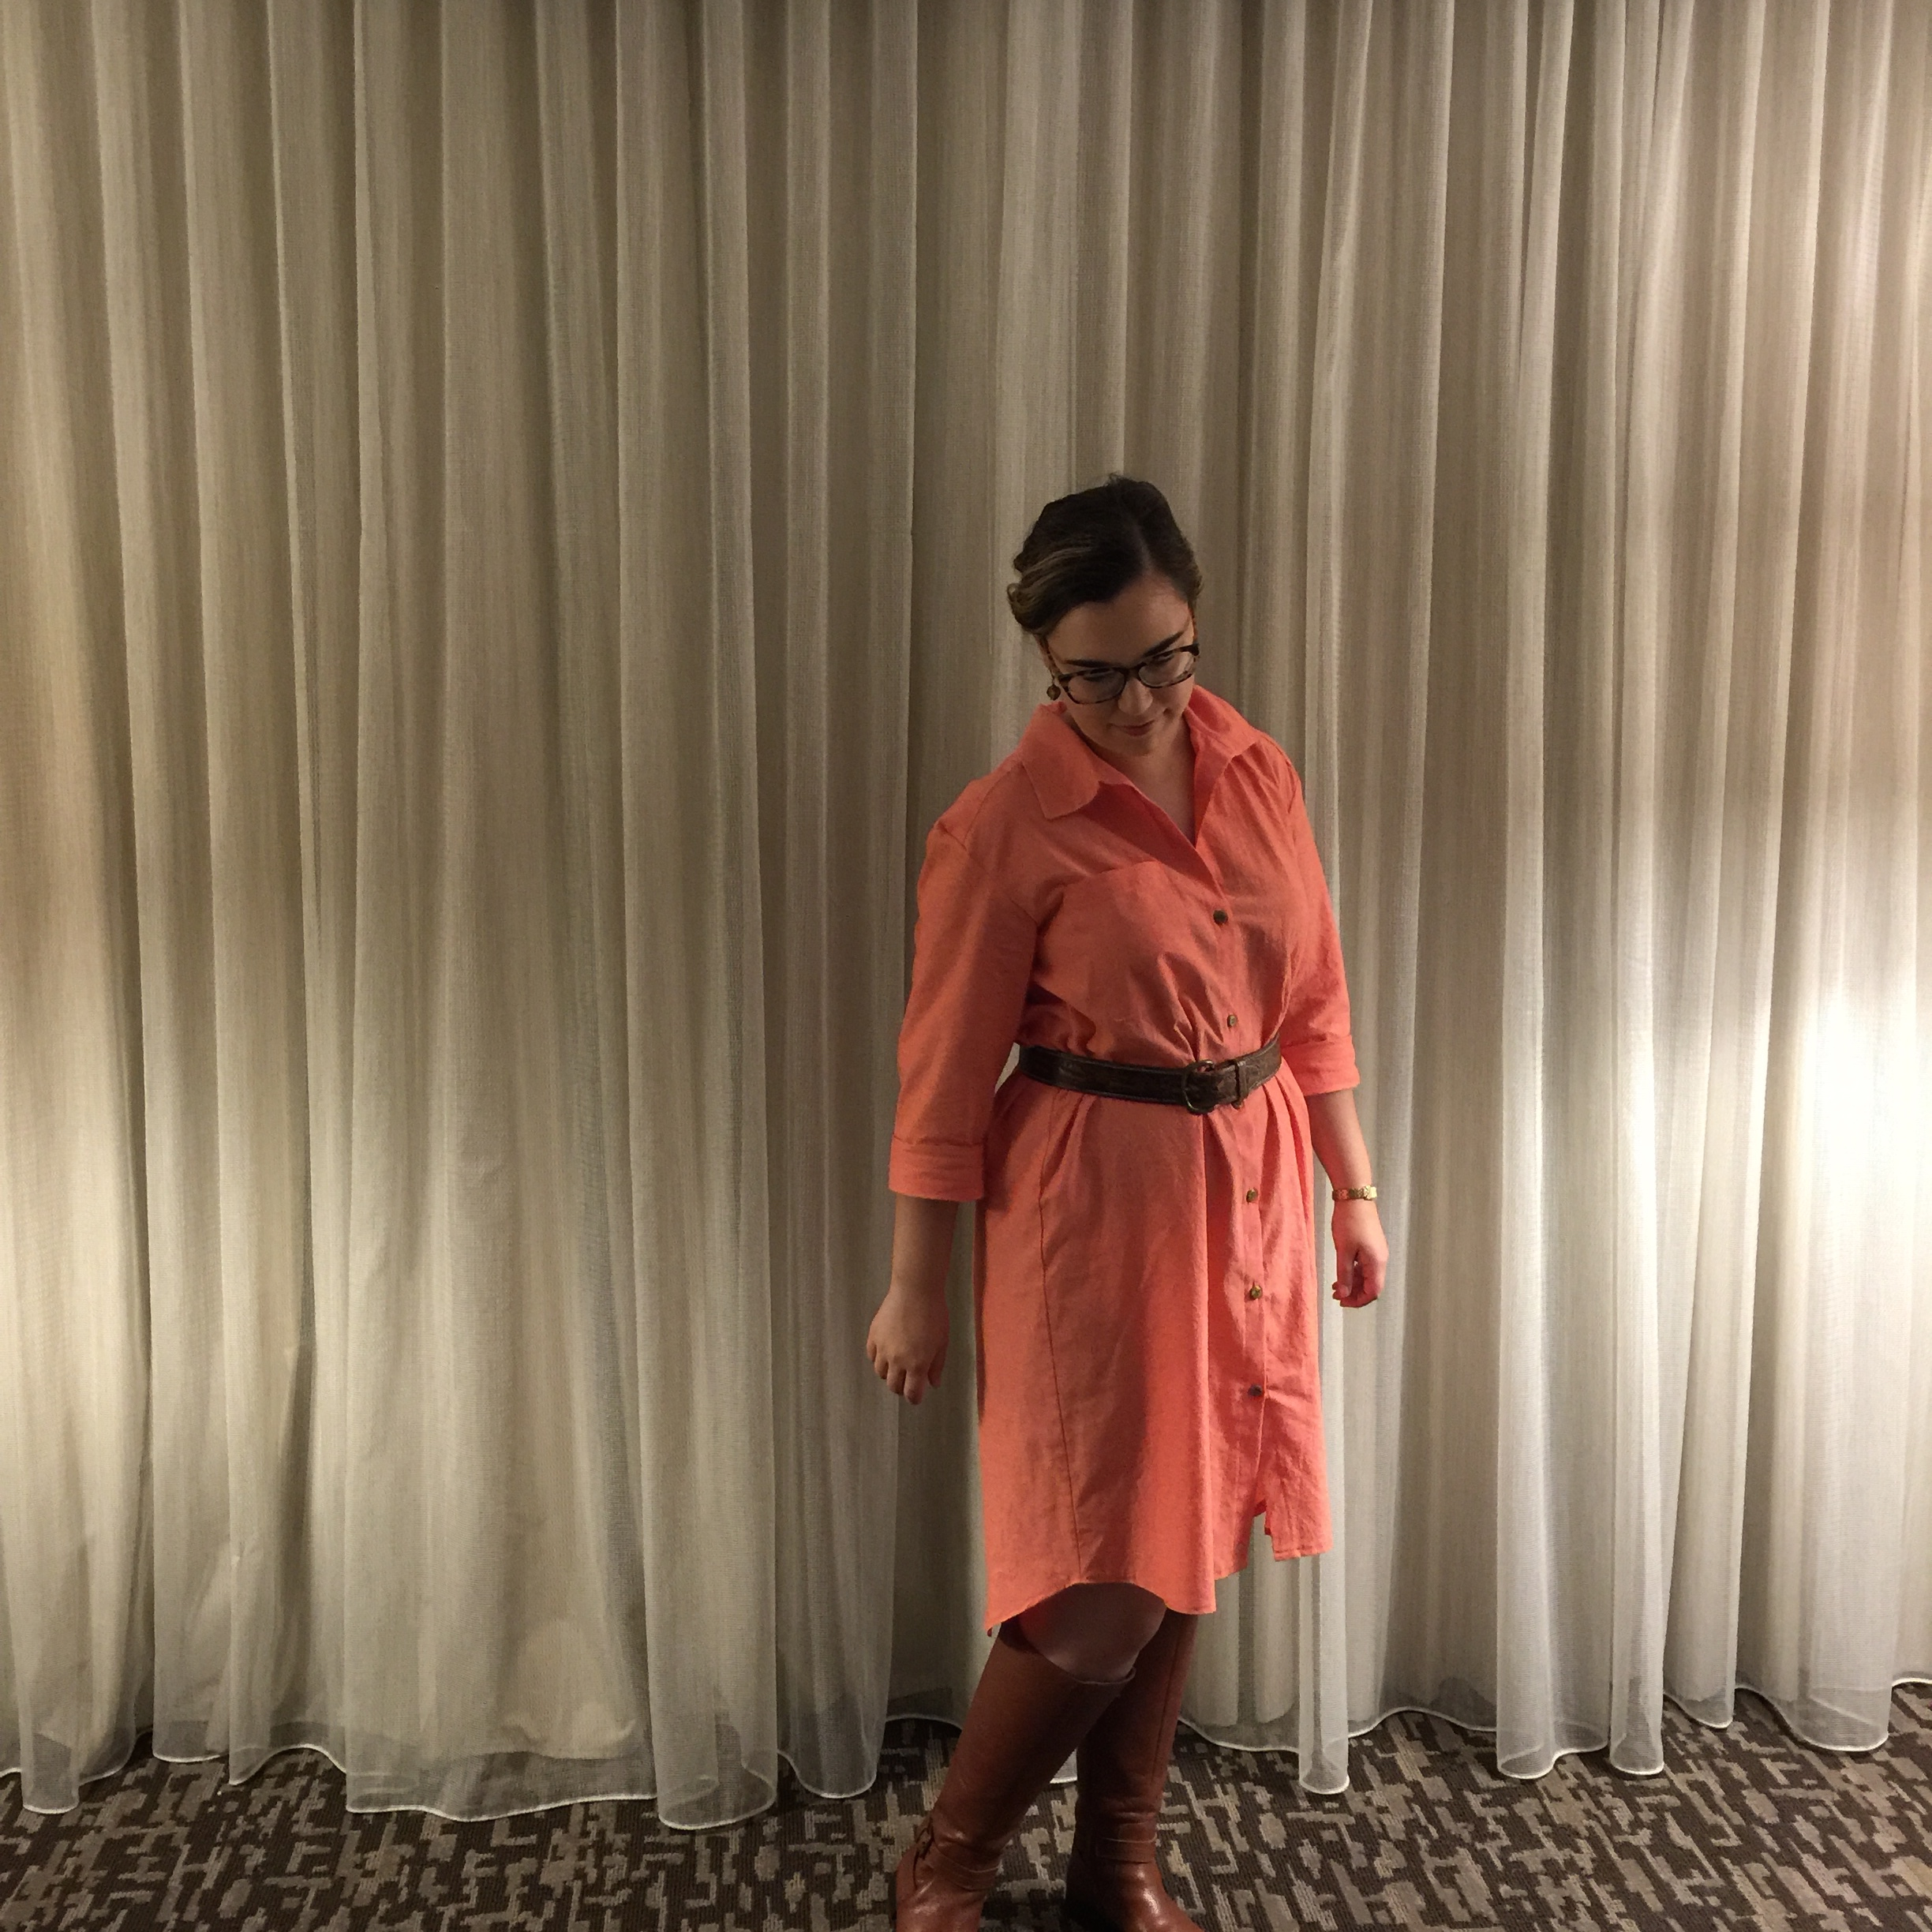 A Shirtdress for All Seasons